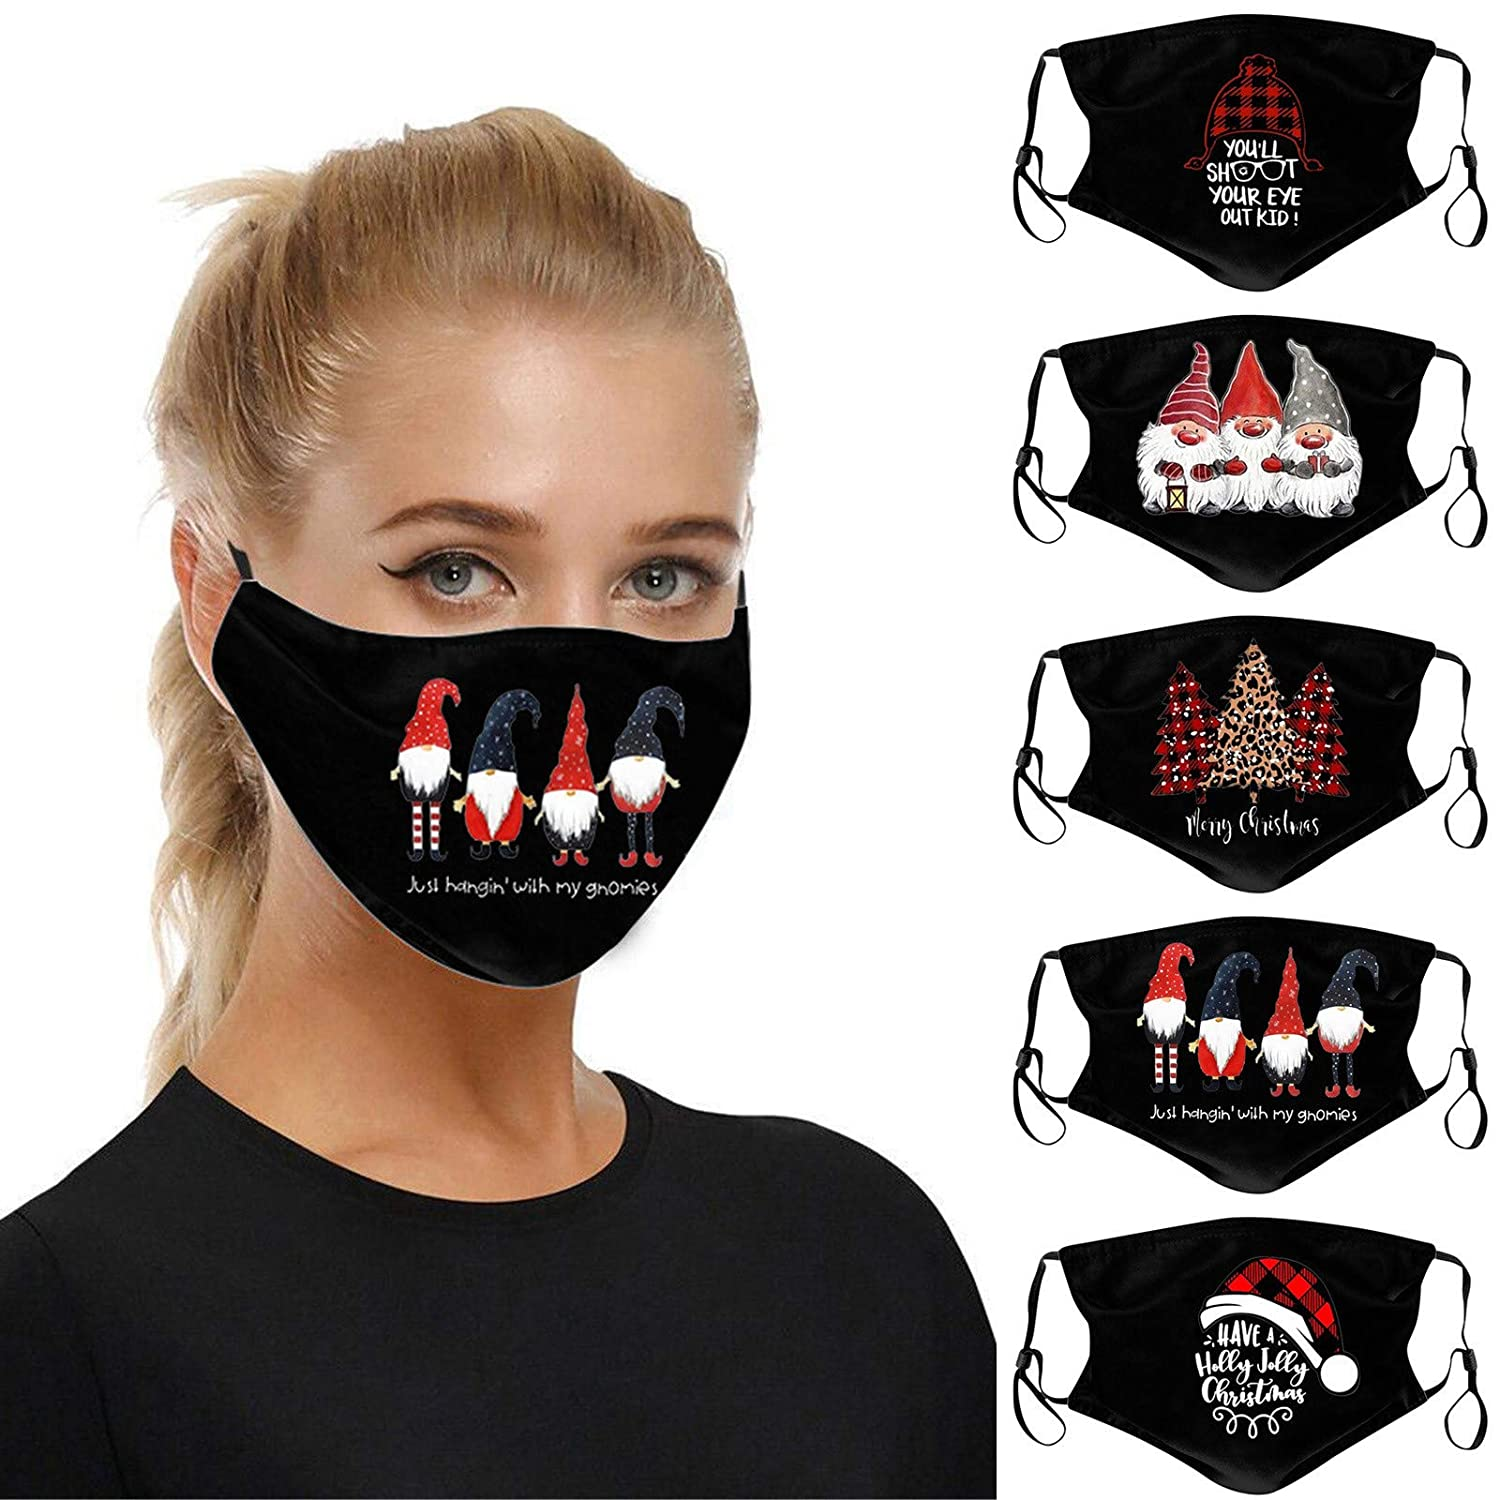 máscara Lavany 5PC Adults Black Christmas Face_Mask, 2Ply Washable Anti-Foggy Reusable Earloop Activated Carbon Protection Breathable Face Covering Balaclava for Party Happy New Years